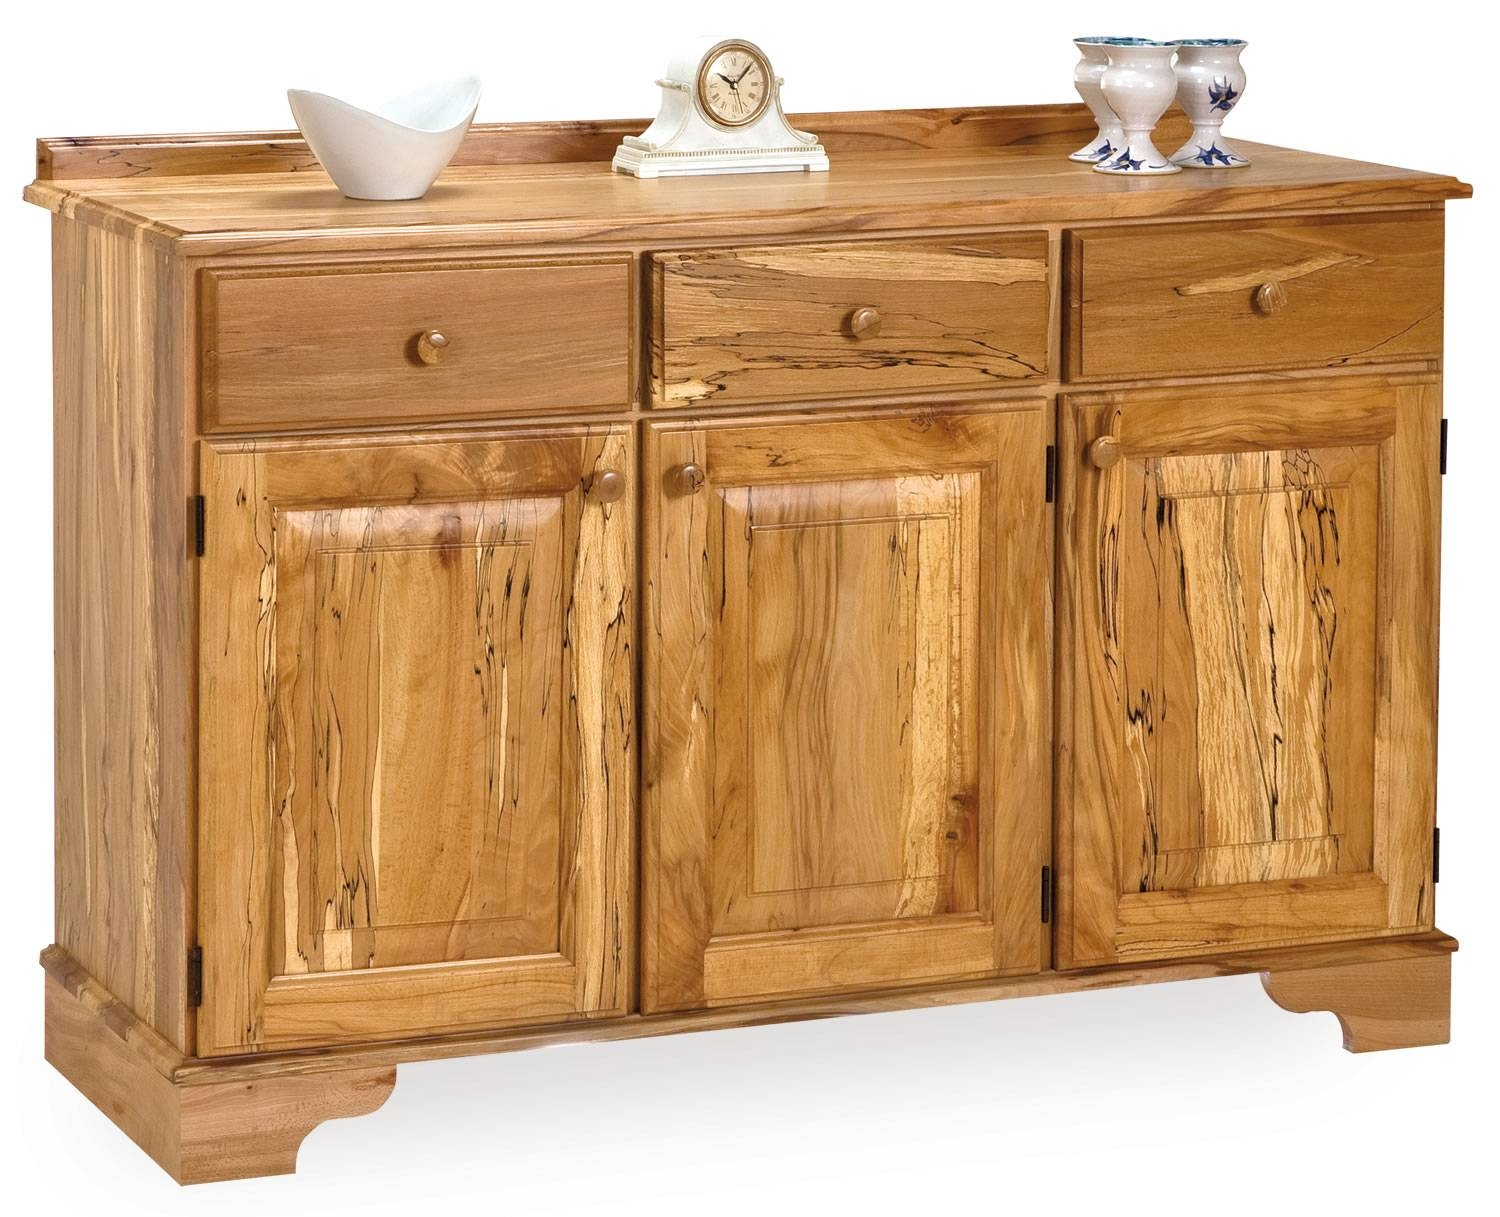 Index Of /images/sideboards With Regard To Beech Sideboards (#12 of 20)